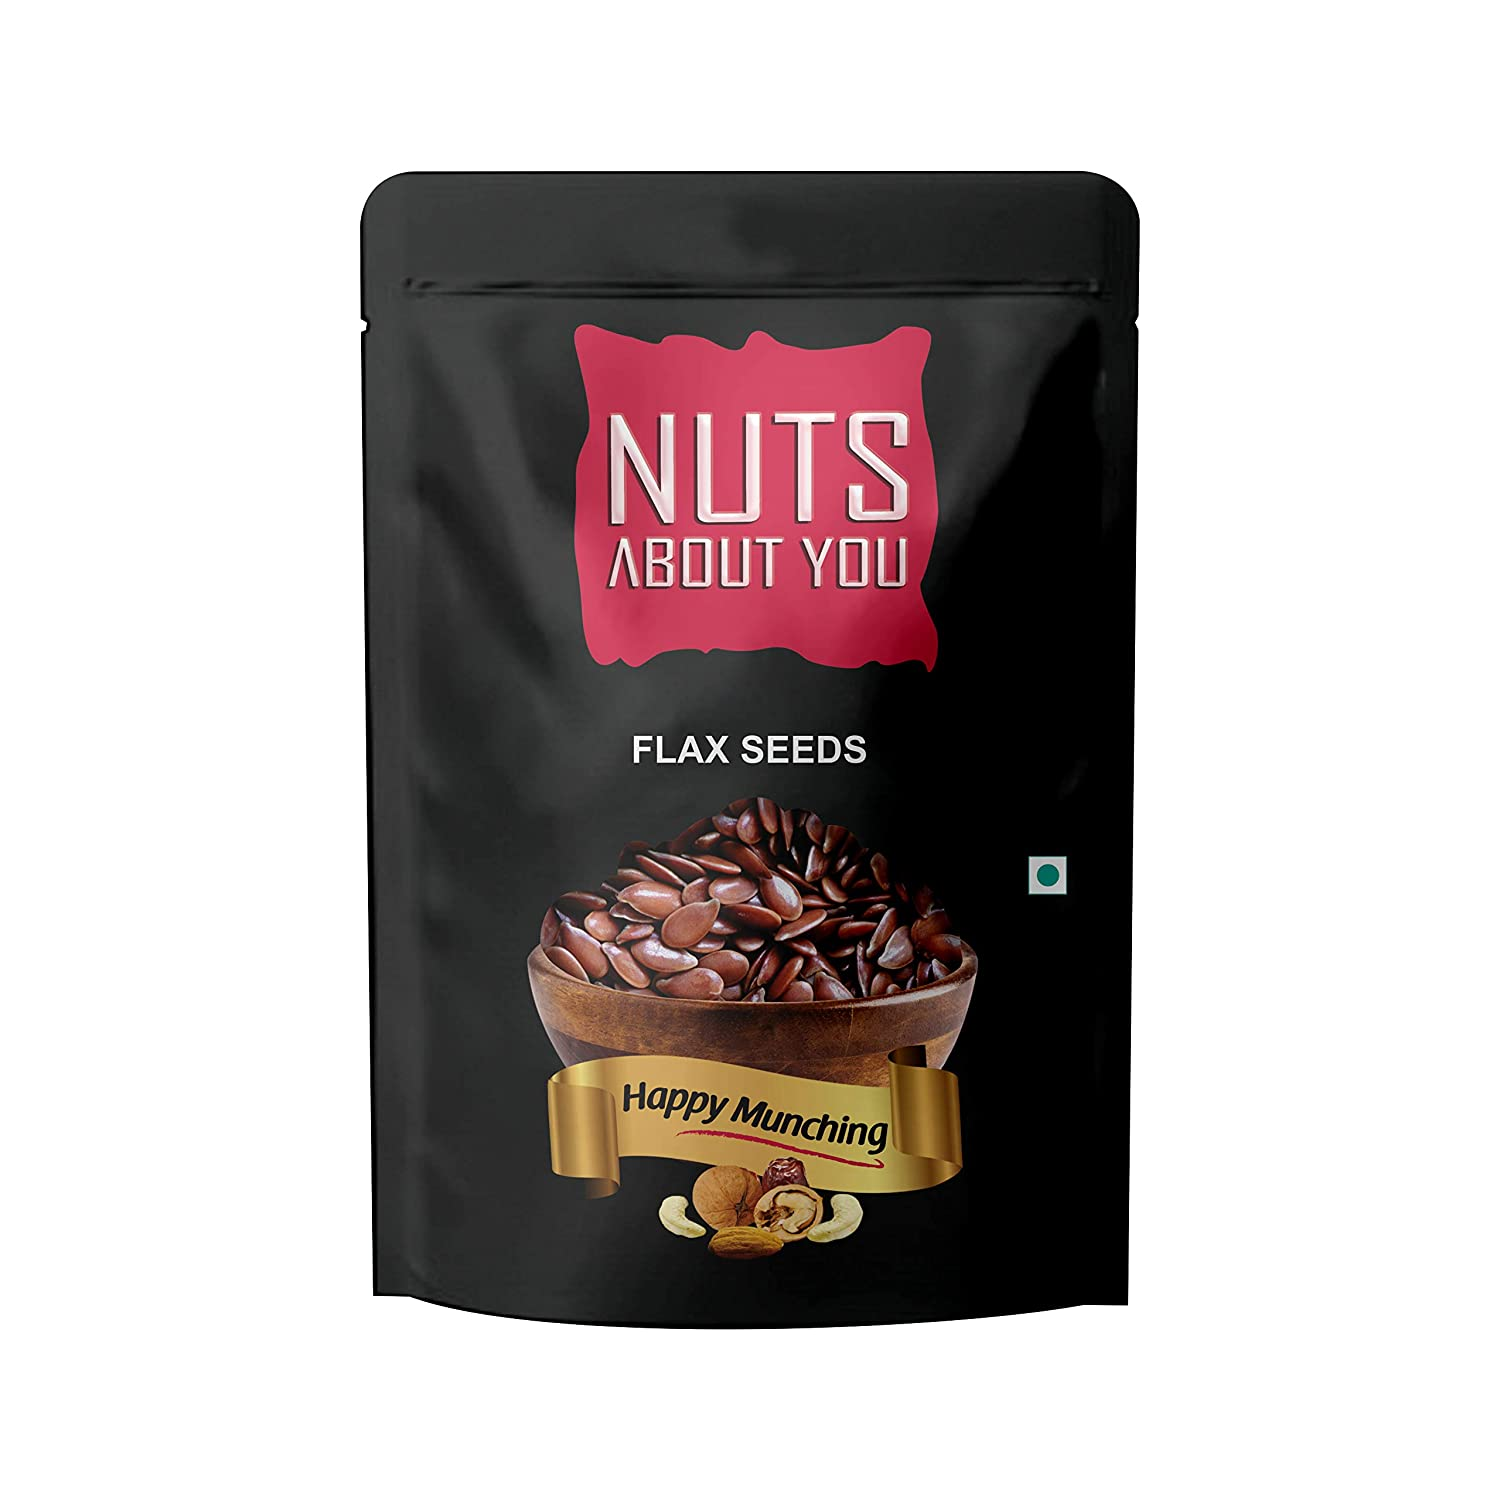 NUTS ABOUT YOU Flax Seeds Pouch, 2 x 250 g